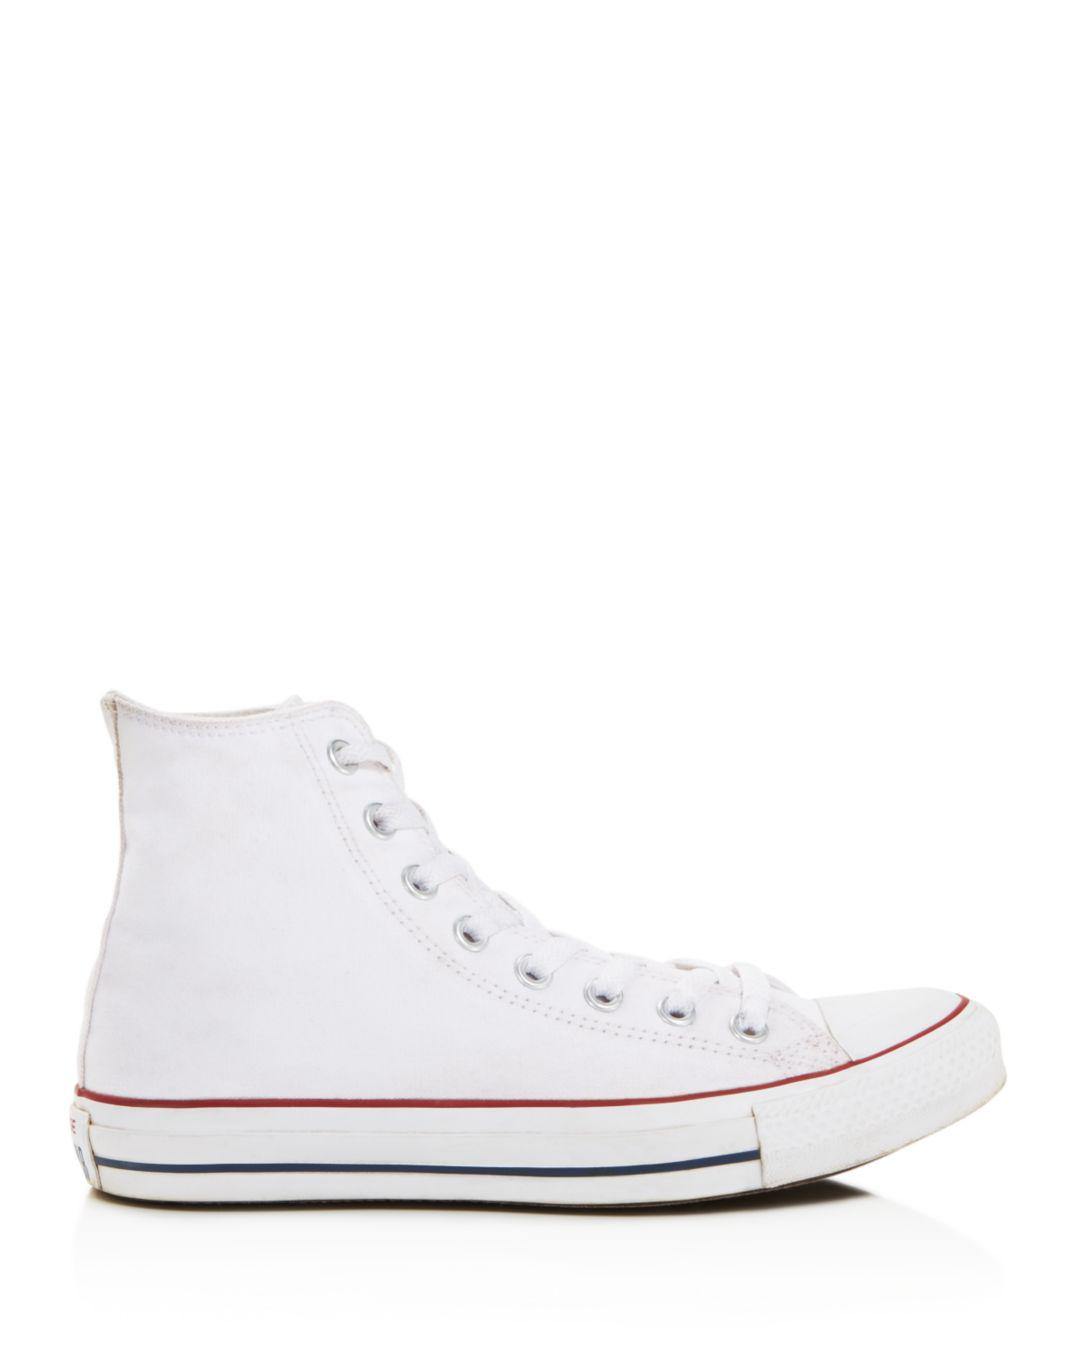 cd48bc77a845 Converse Women s Chuck Taylor All Star High Top Sneakers in White - Save  60% - Lyst